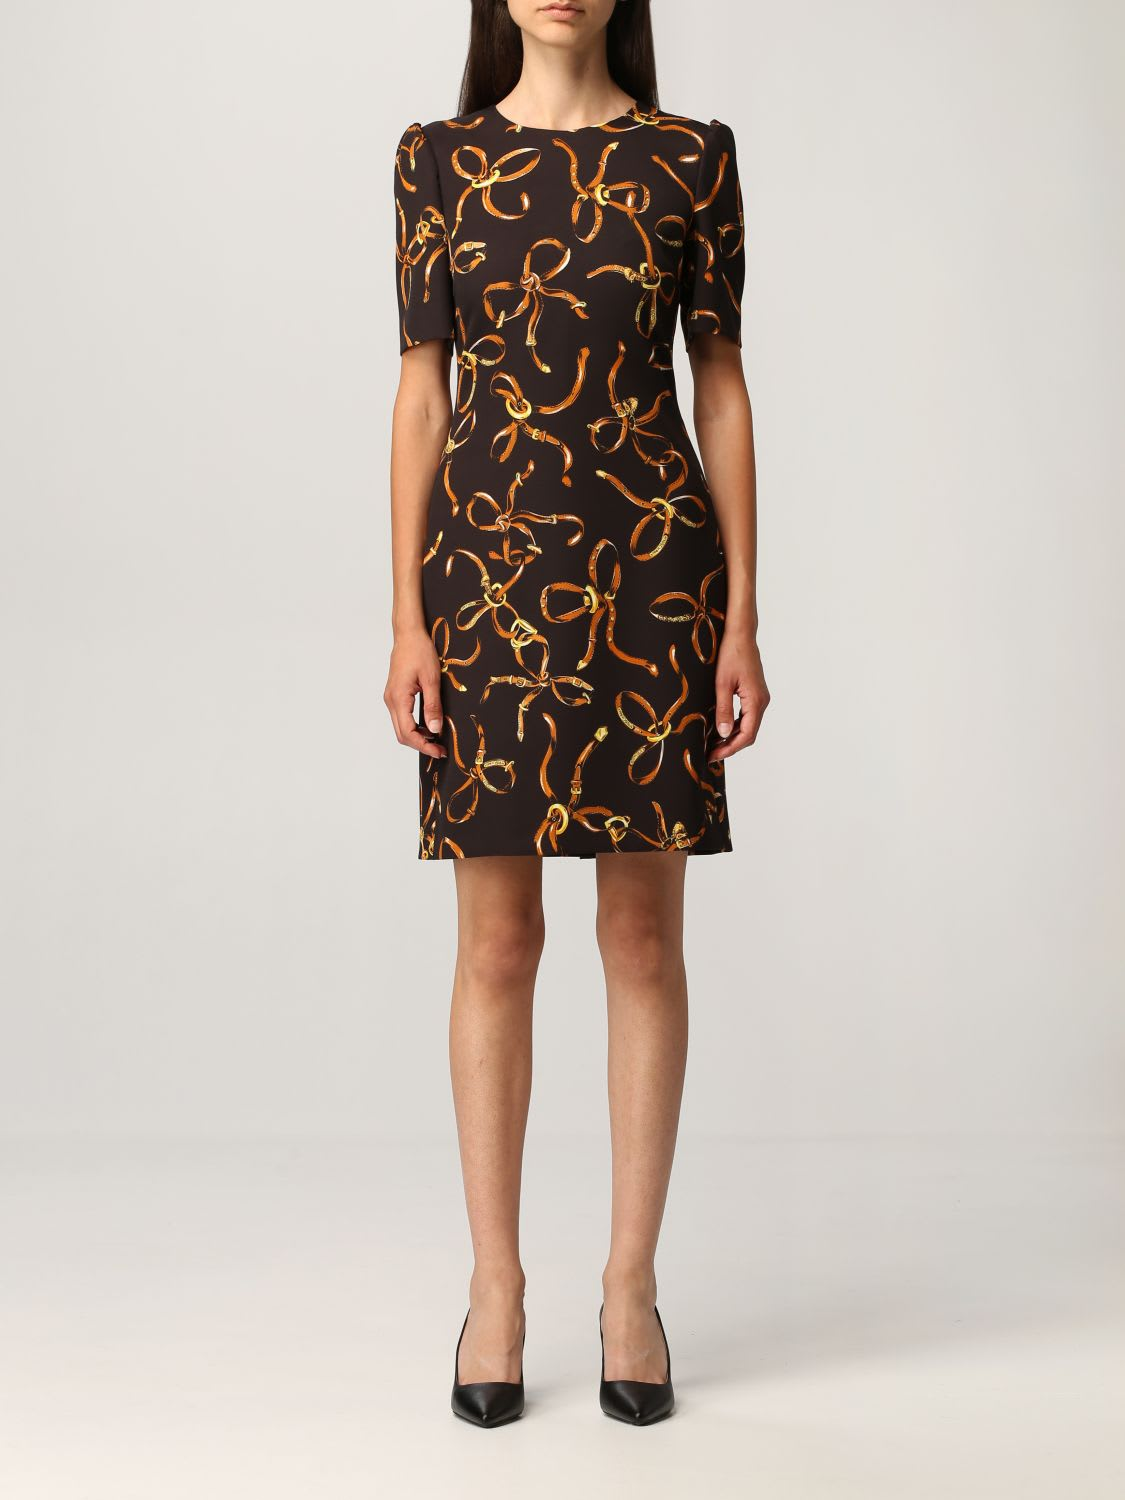 Boutique Moschino Dress Moschino Boutique Short Dress With Print